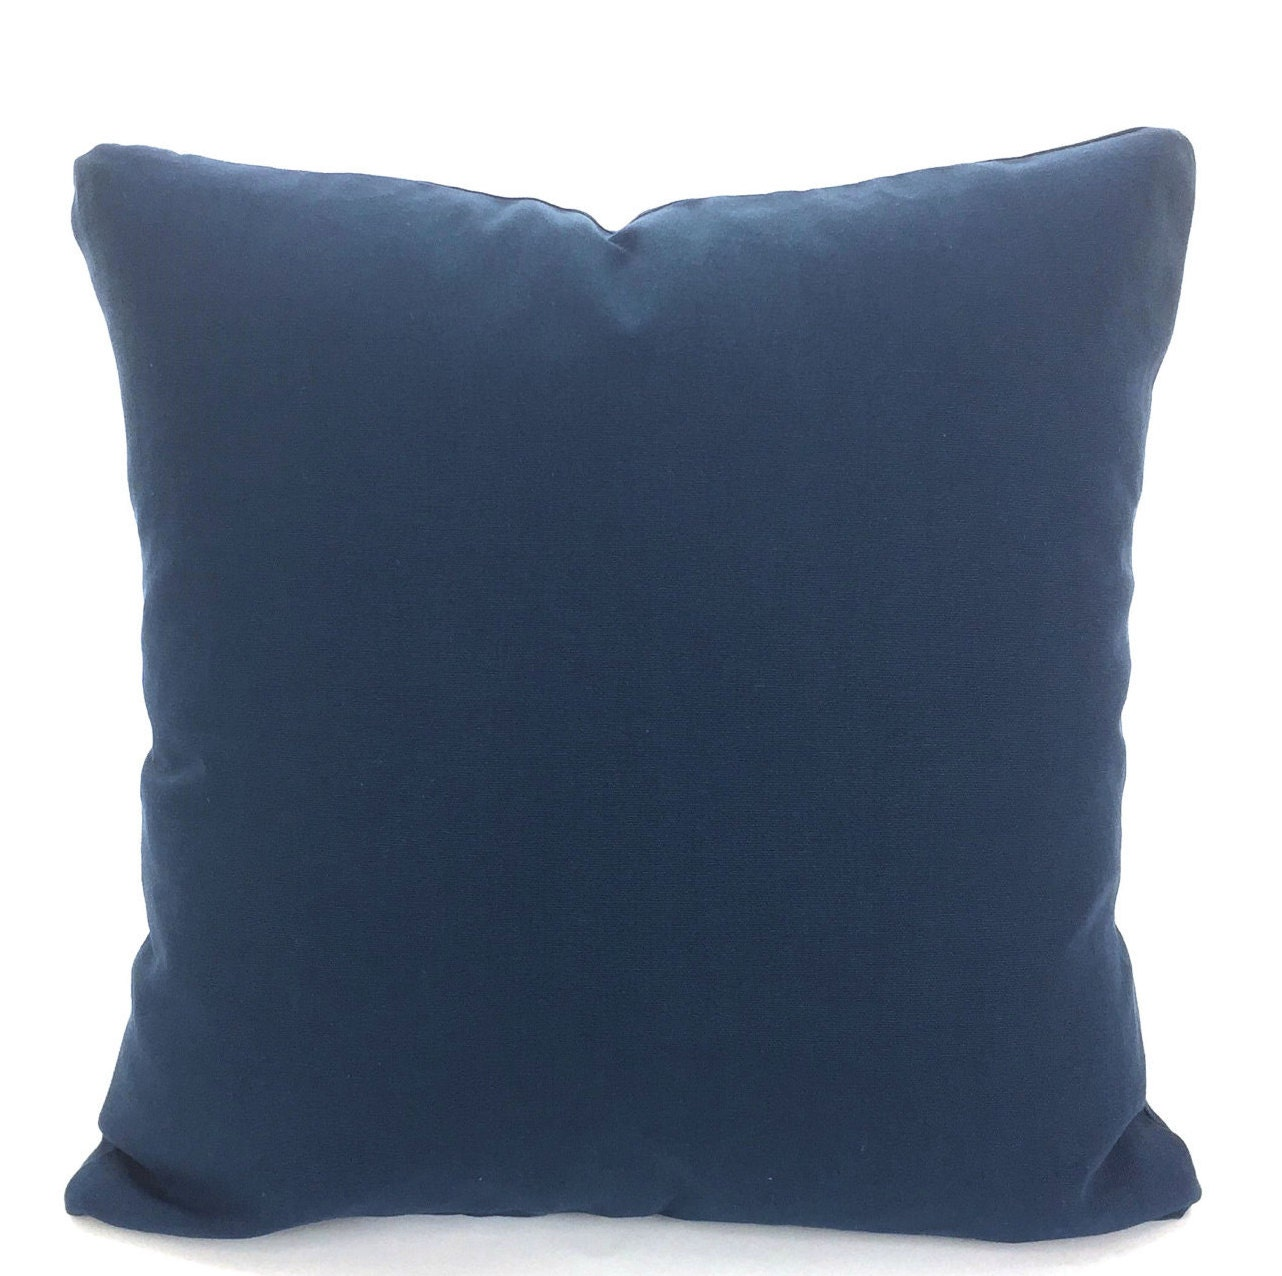 Navy Blue Throw Pillow Covers : Solid Navy Blue Pillow Covers Decorative Throw Pillows